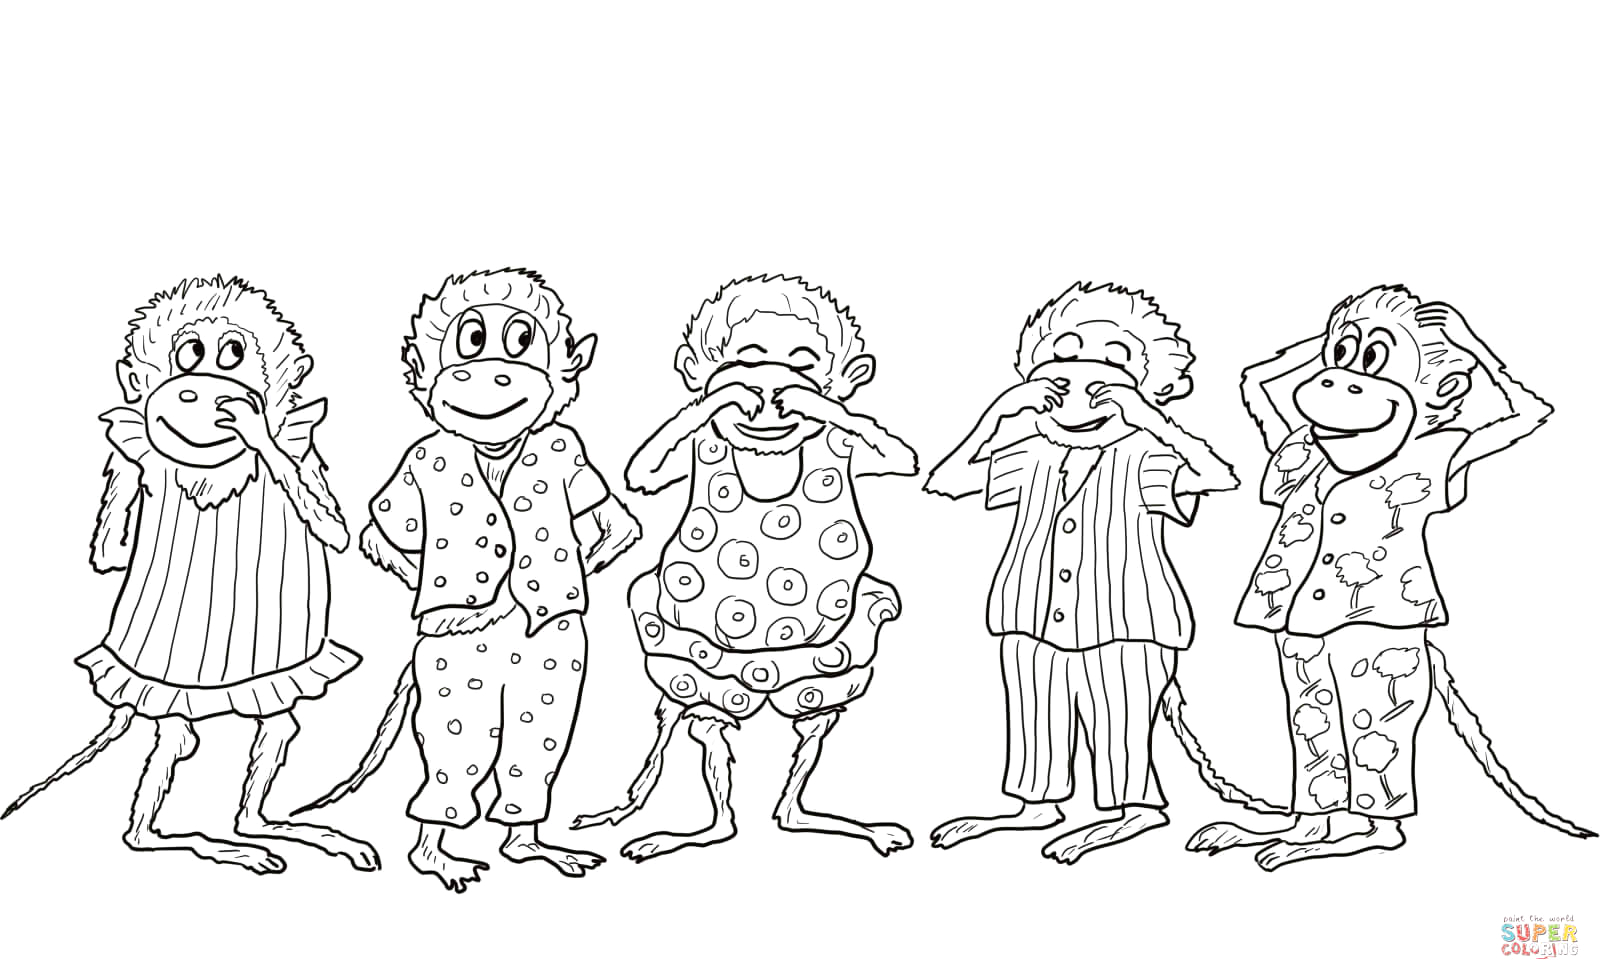 5 Little Monkeys Jumping On the Bed Coloring Pages Five Little Monkeys Jumping On the Bed Coloring Page